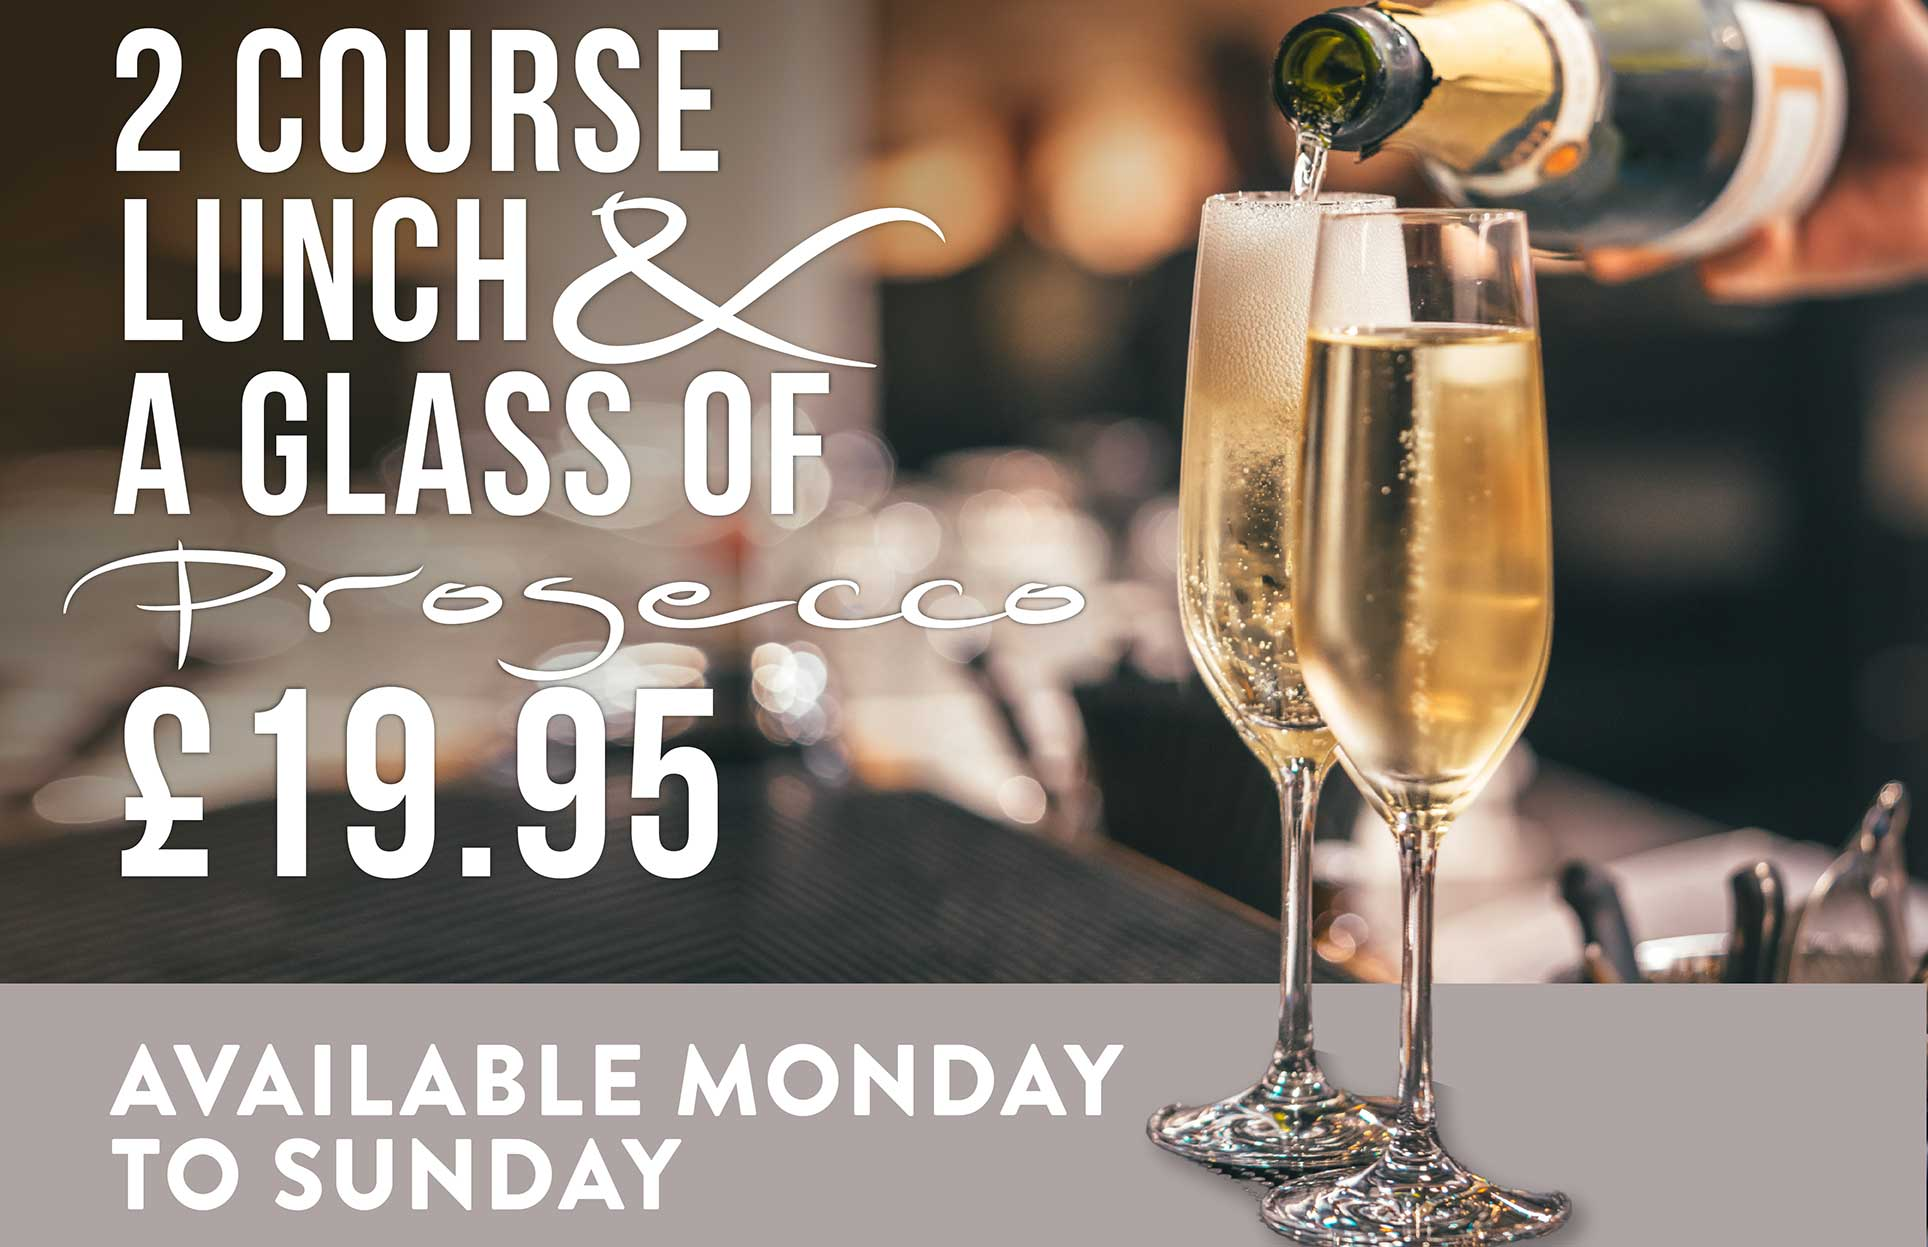 Two course lunch and a glass of prosecco